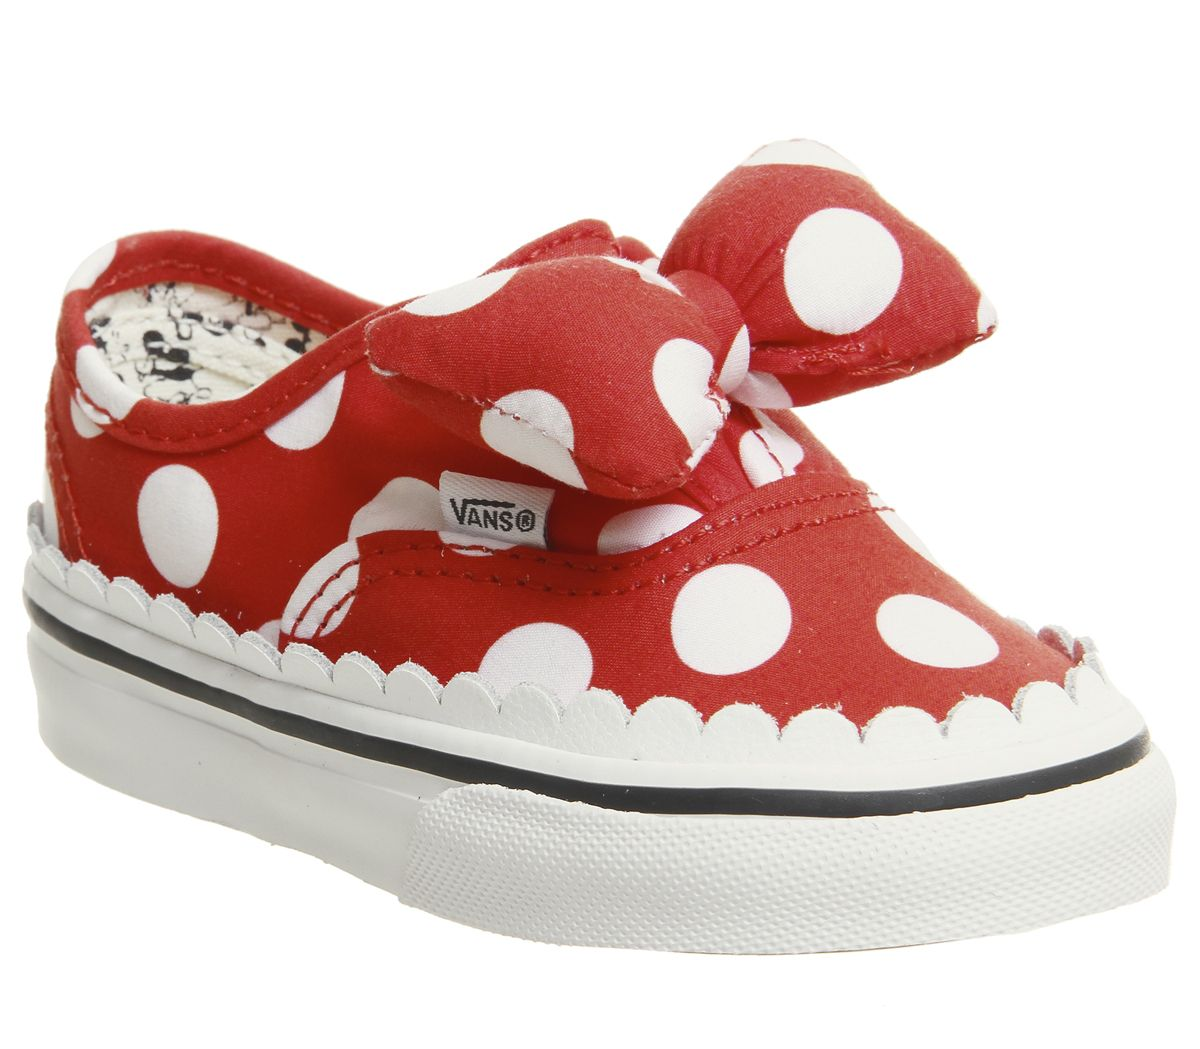 b85f32a9c107 Vans Authentic Toddlers Trainers Minnies Bow True White Disney - Unisex